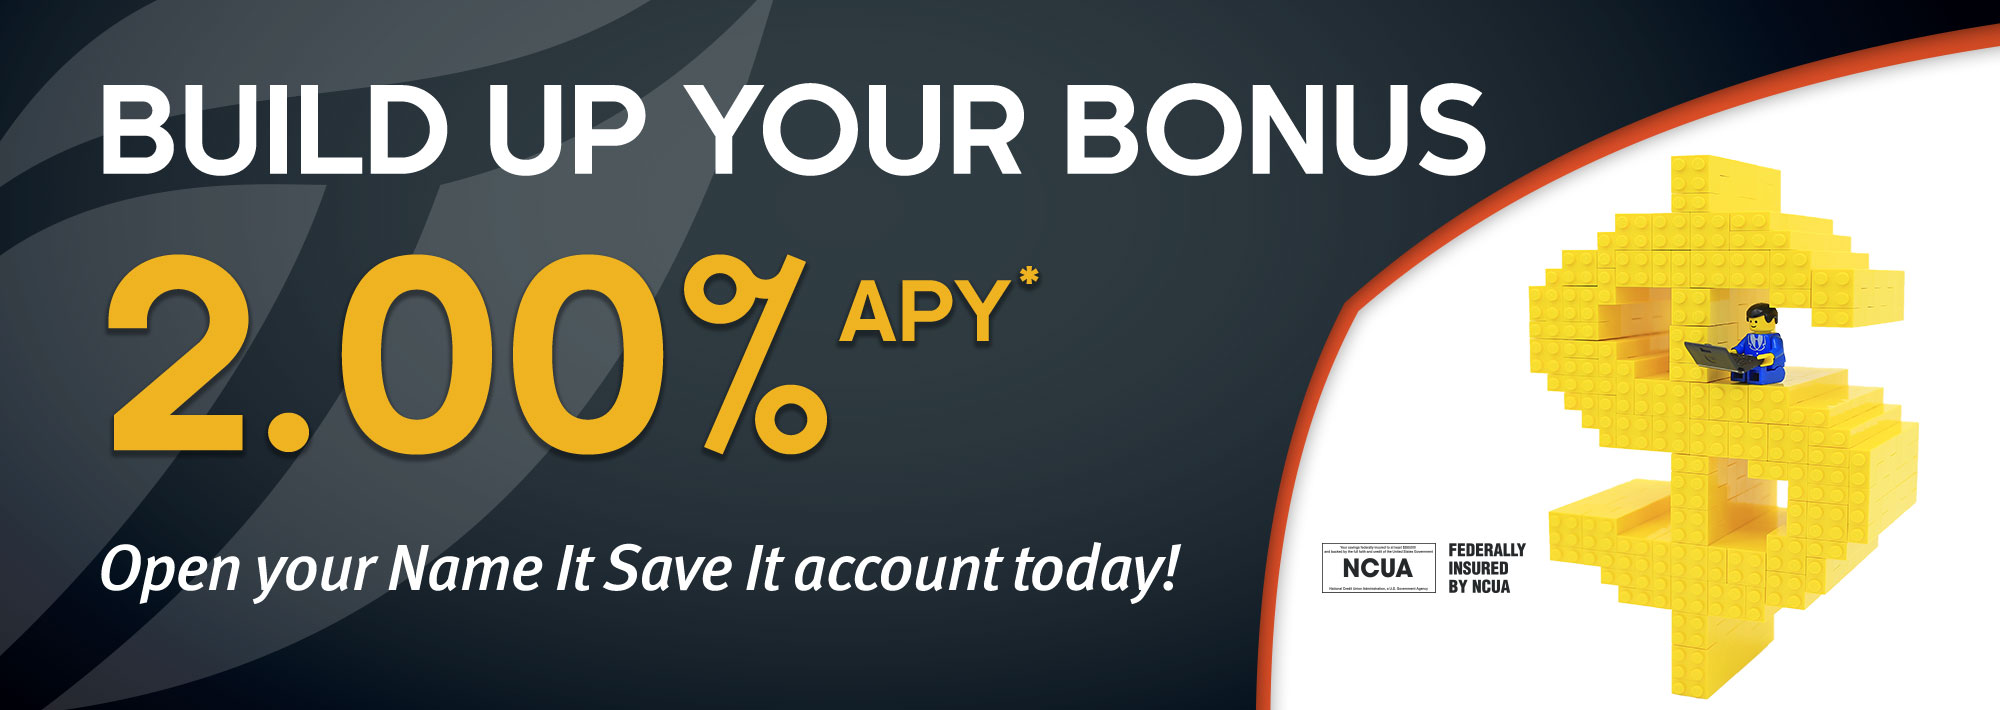 Build up your bonus: 2.00% APY*. Open your Name It Save It account today!